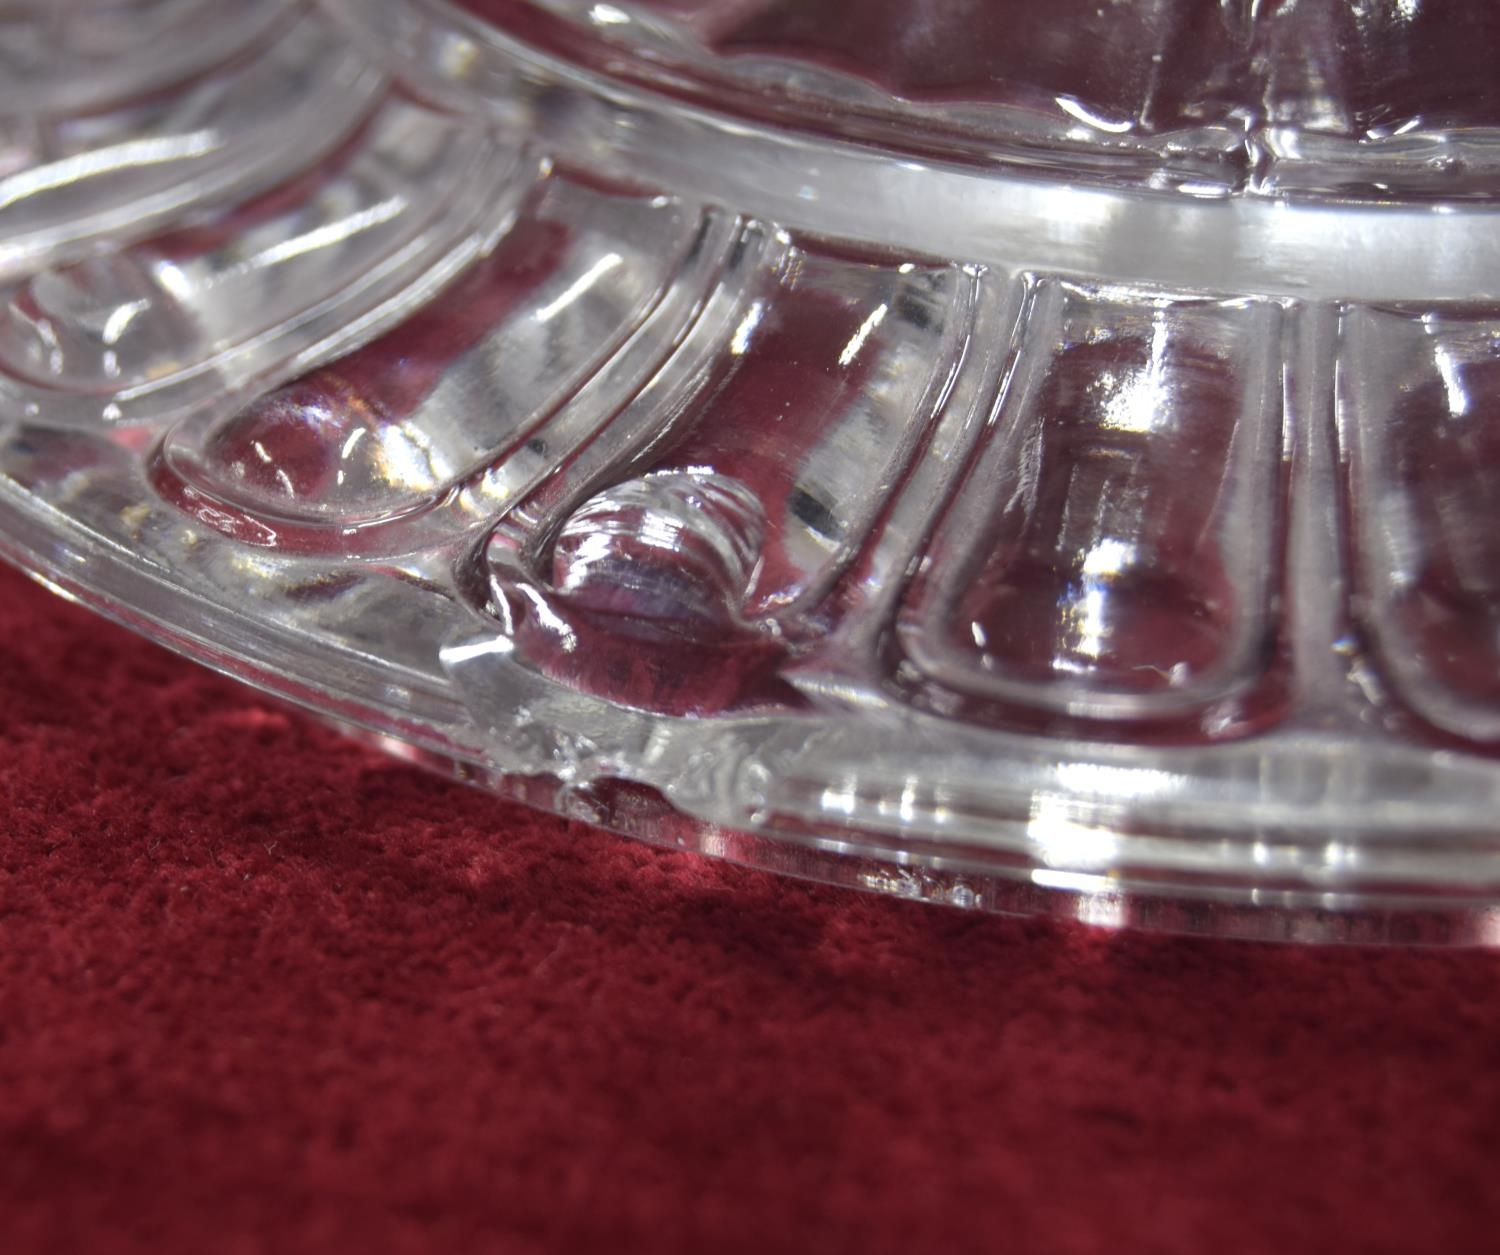 Baccarat clear and frosted glass bonbon dish and cover,with twin moulded elephant's head handles, - Image 3 of 3